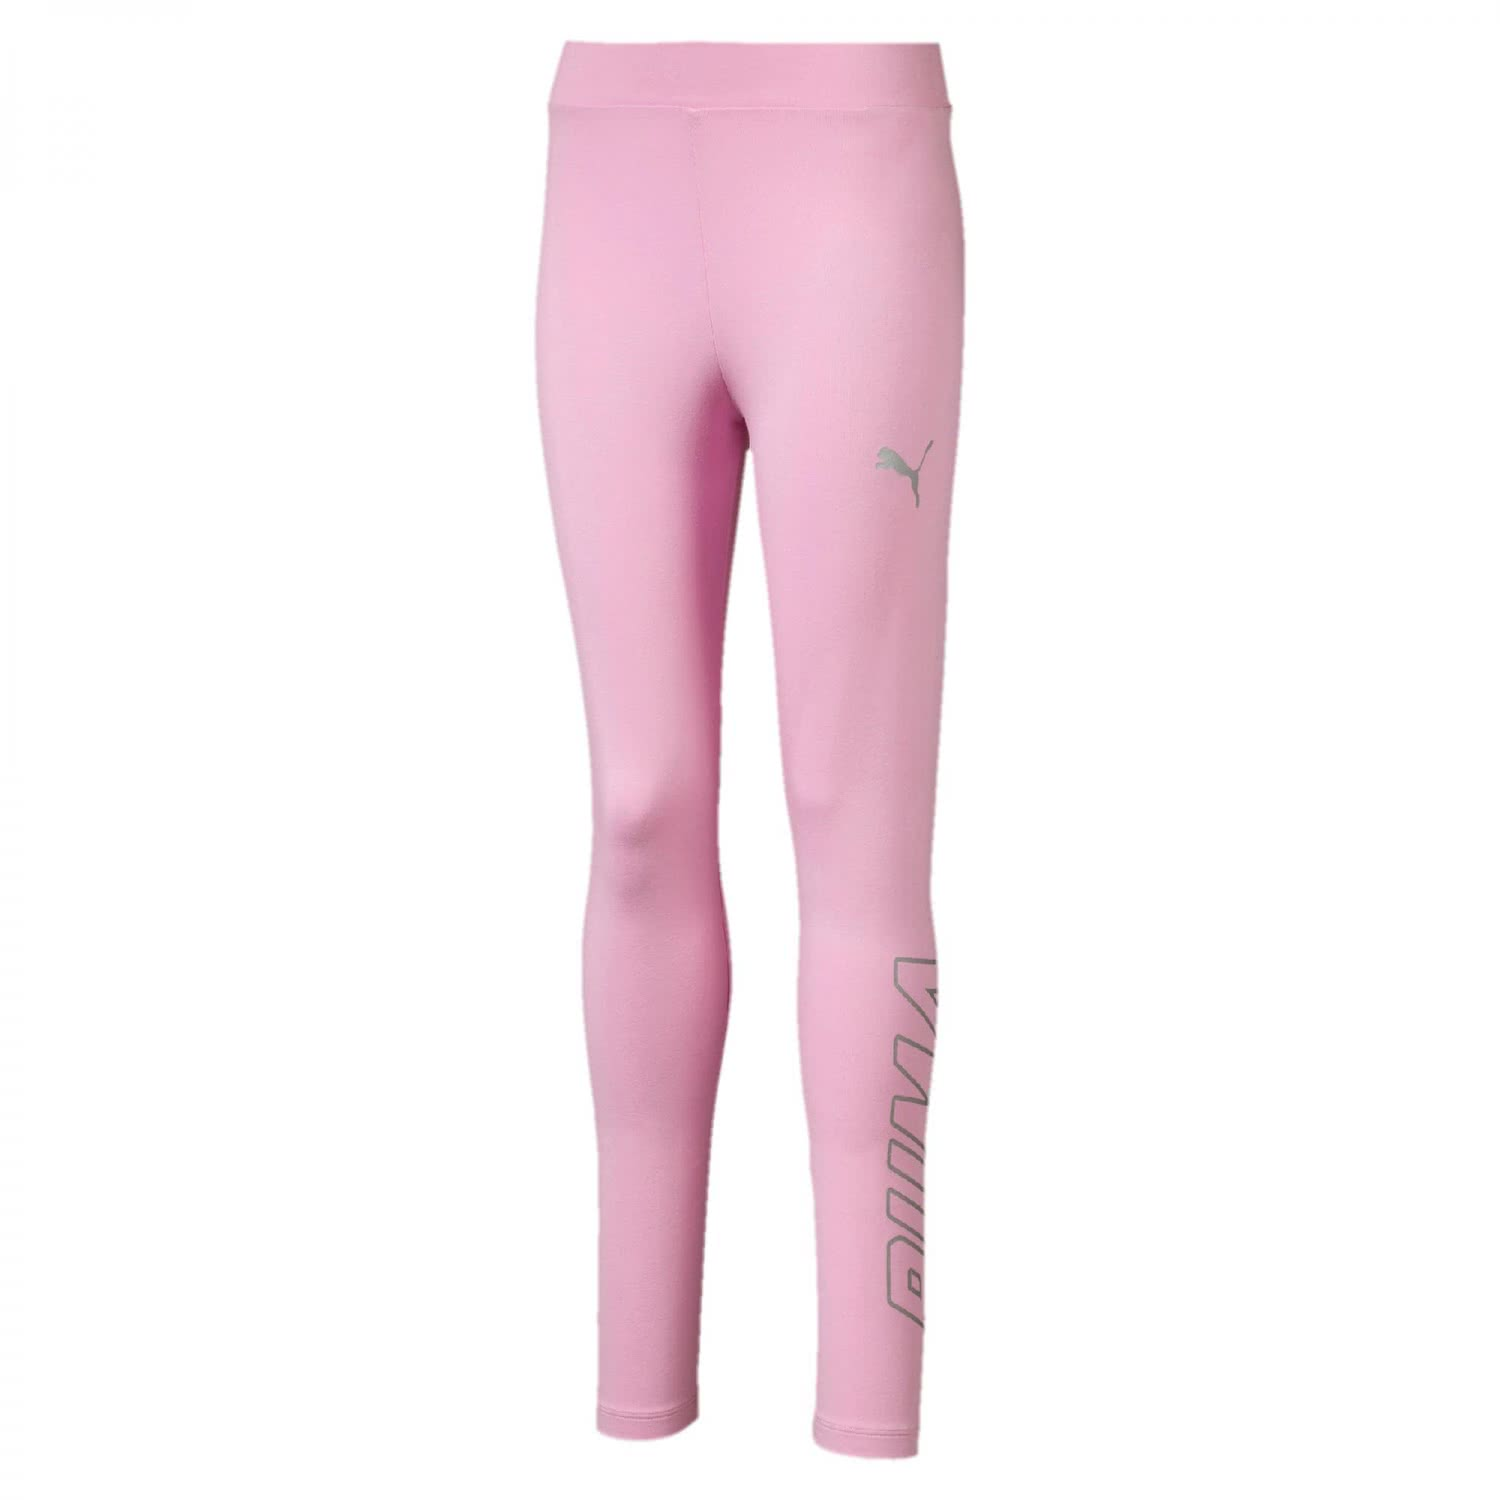 Puma Mädchen Leggings Alpha Leggings G 854376 |